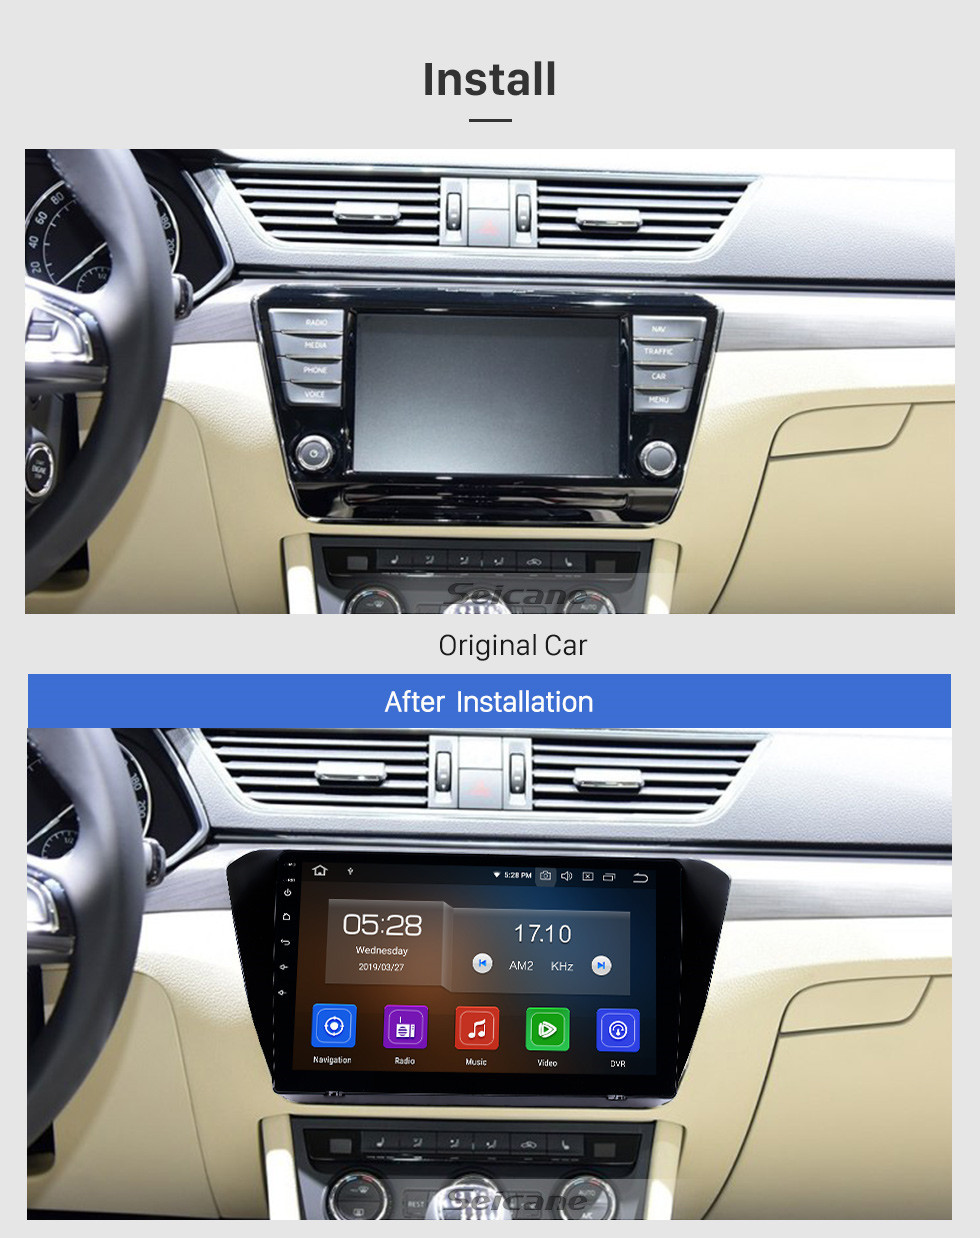 Seicane 10.1 inch Android 10.0 Radio for 2015-2018 Skoda Superb Bluetooth HD Touchscreen GPS Navigation Carplay USB support TPMS DAB+ DVR